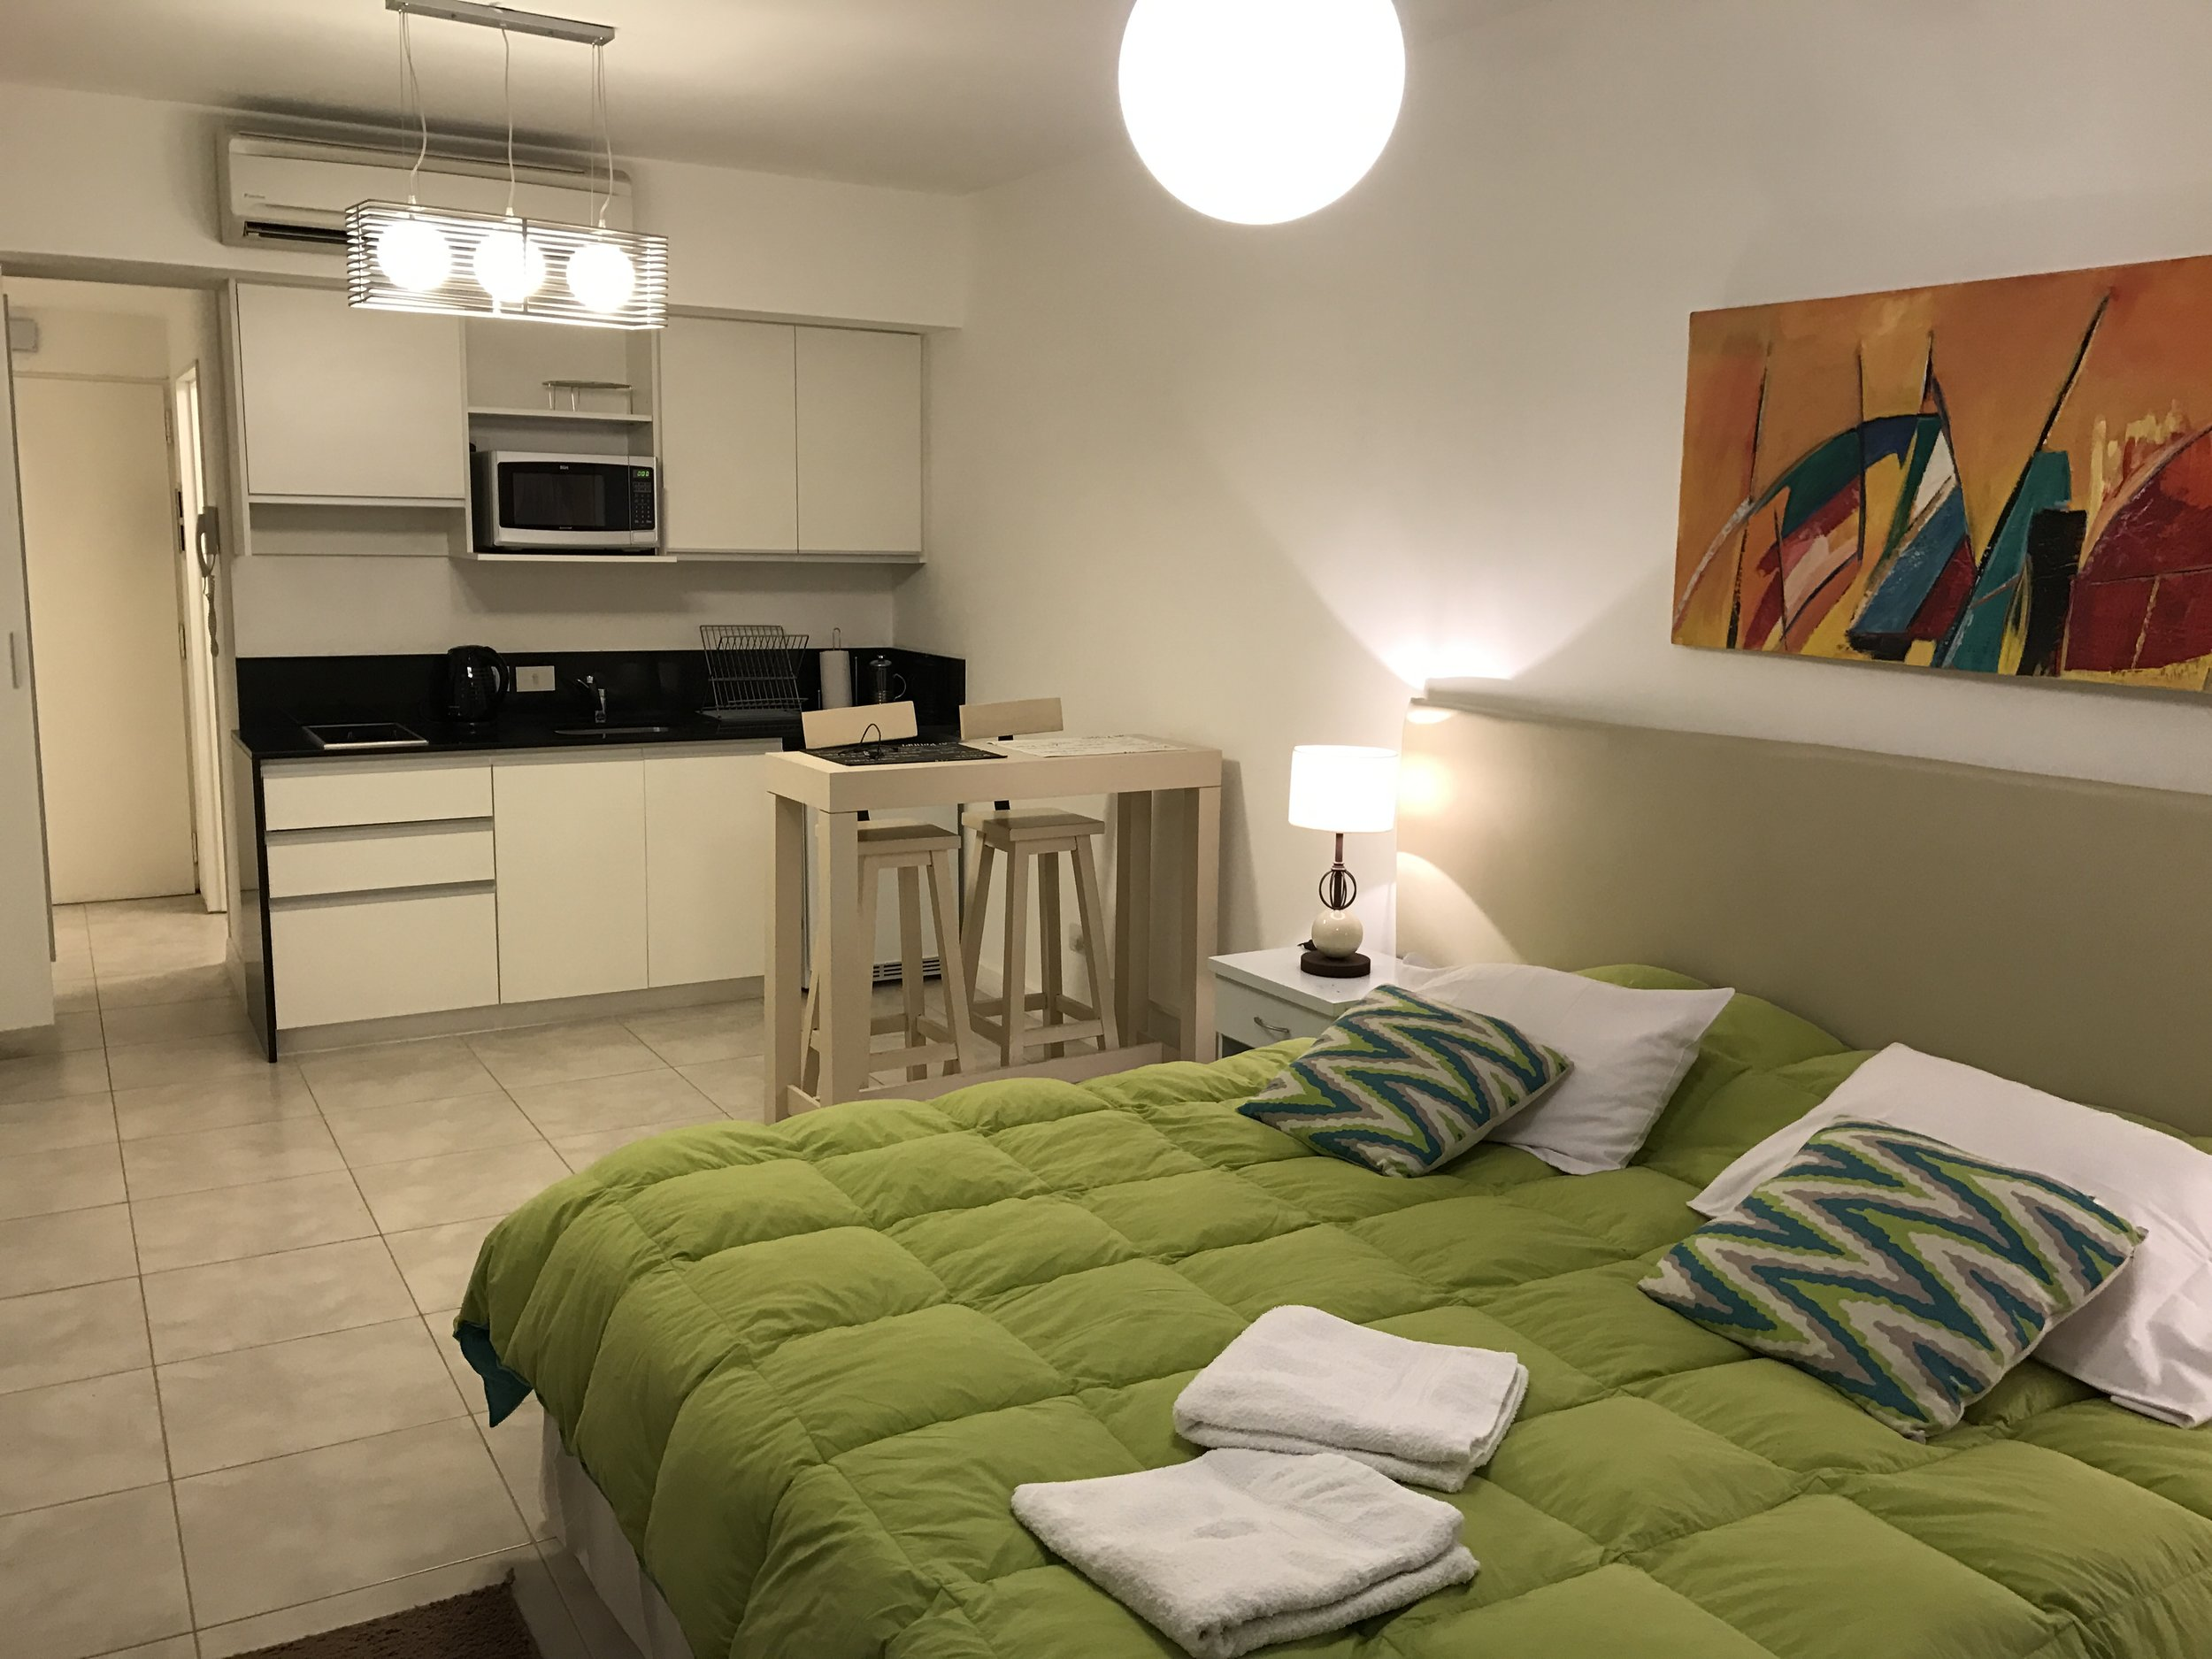 My studio apartment in Buenos Aires. Home for my last three weeks in South America.